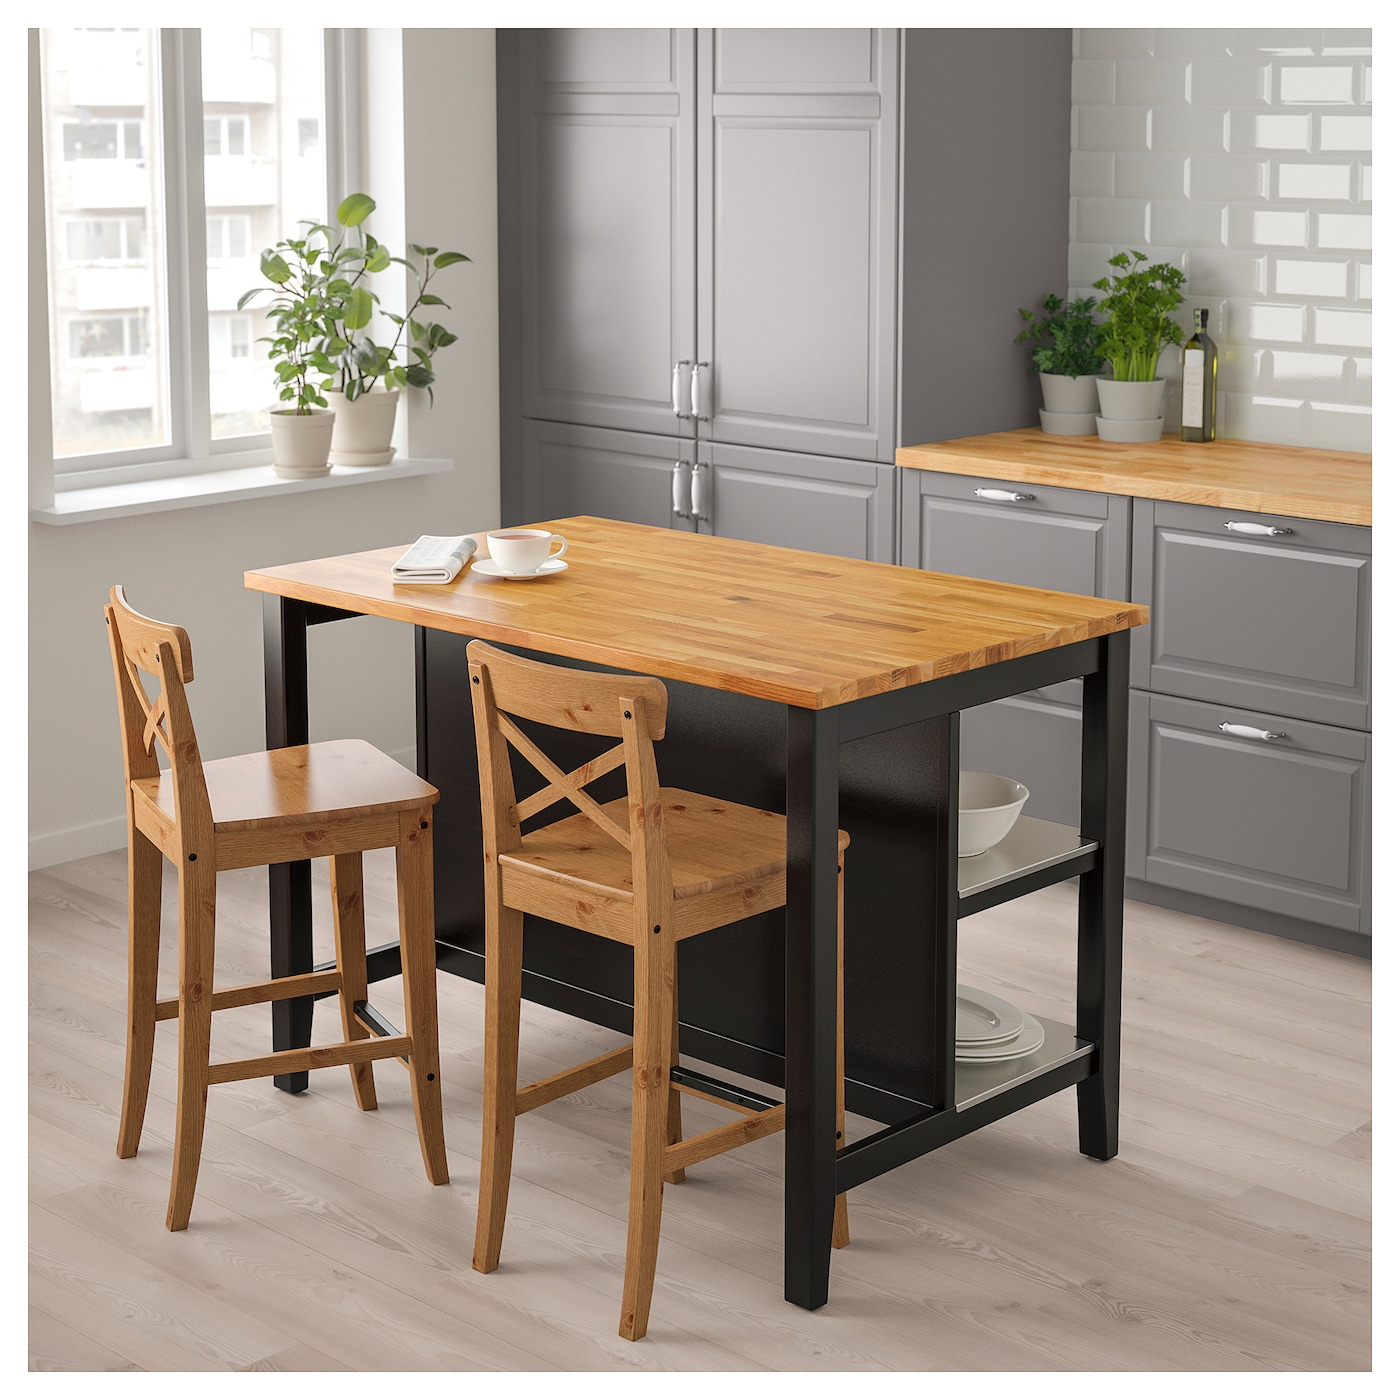 oak kitchen island with seating stenstorp kitchen island black brown oak 126x79 cm ikea 7133